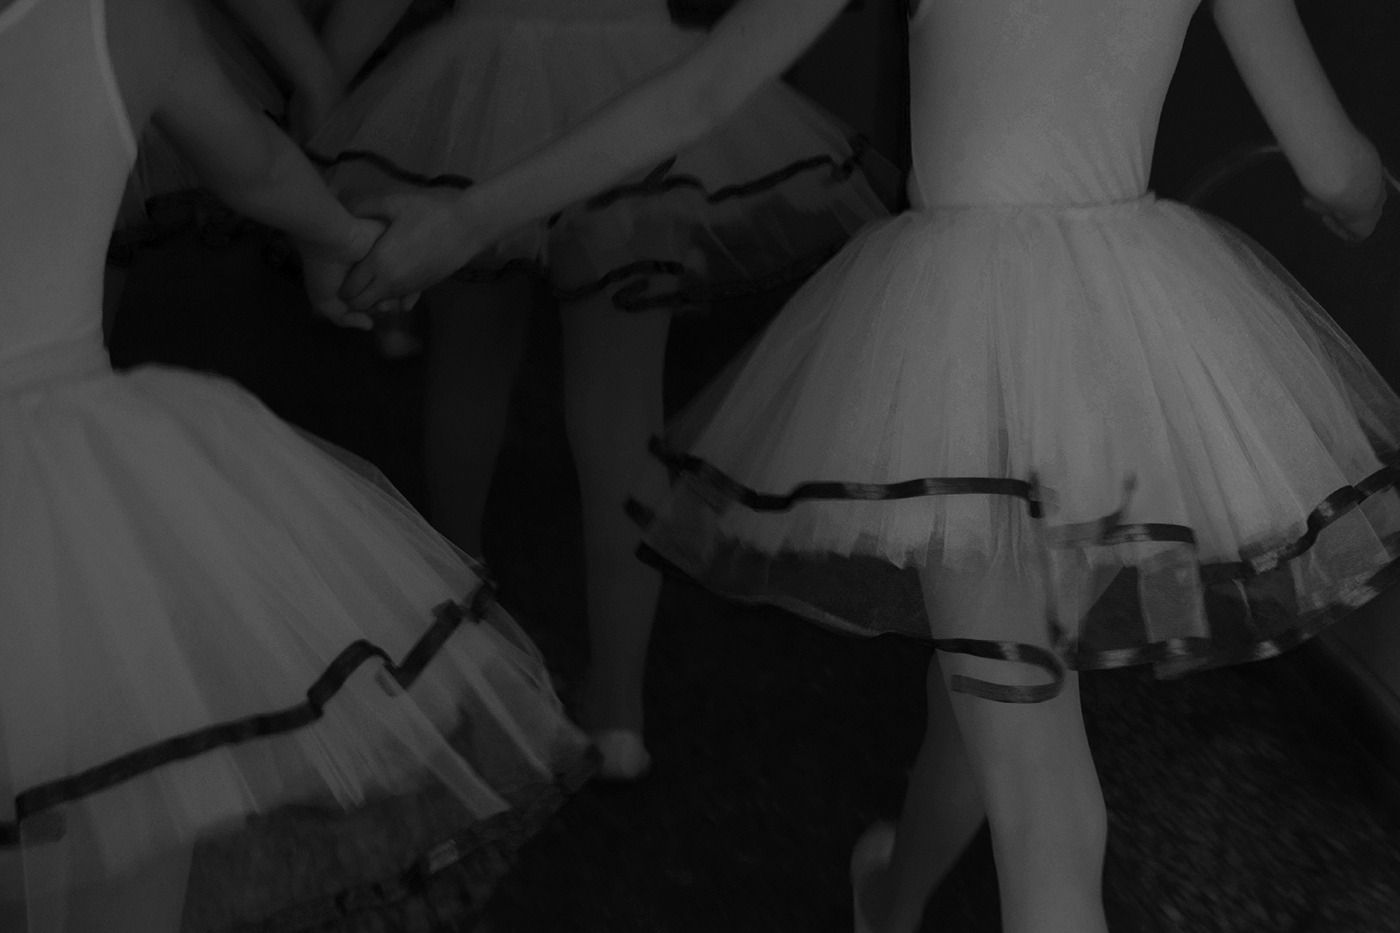 DSC 1456 - Photostory from Gyumri's Ballet School